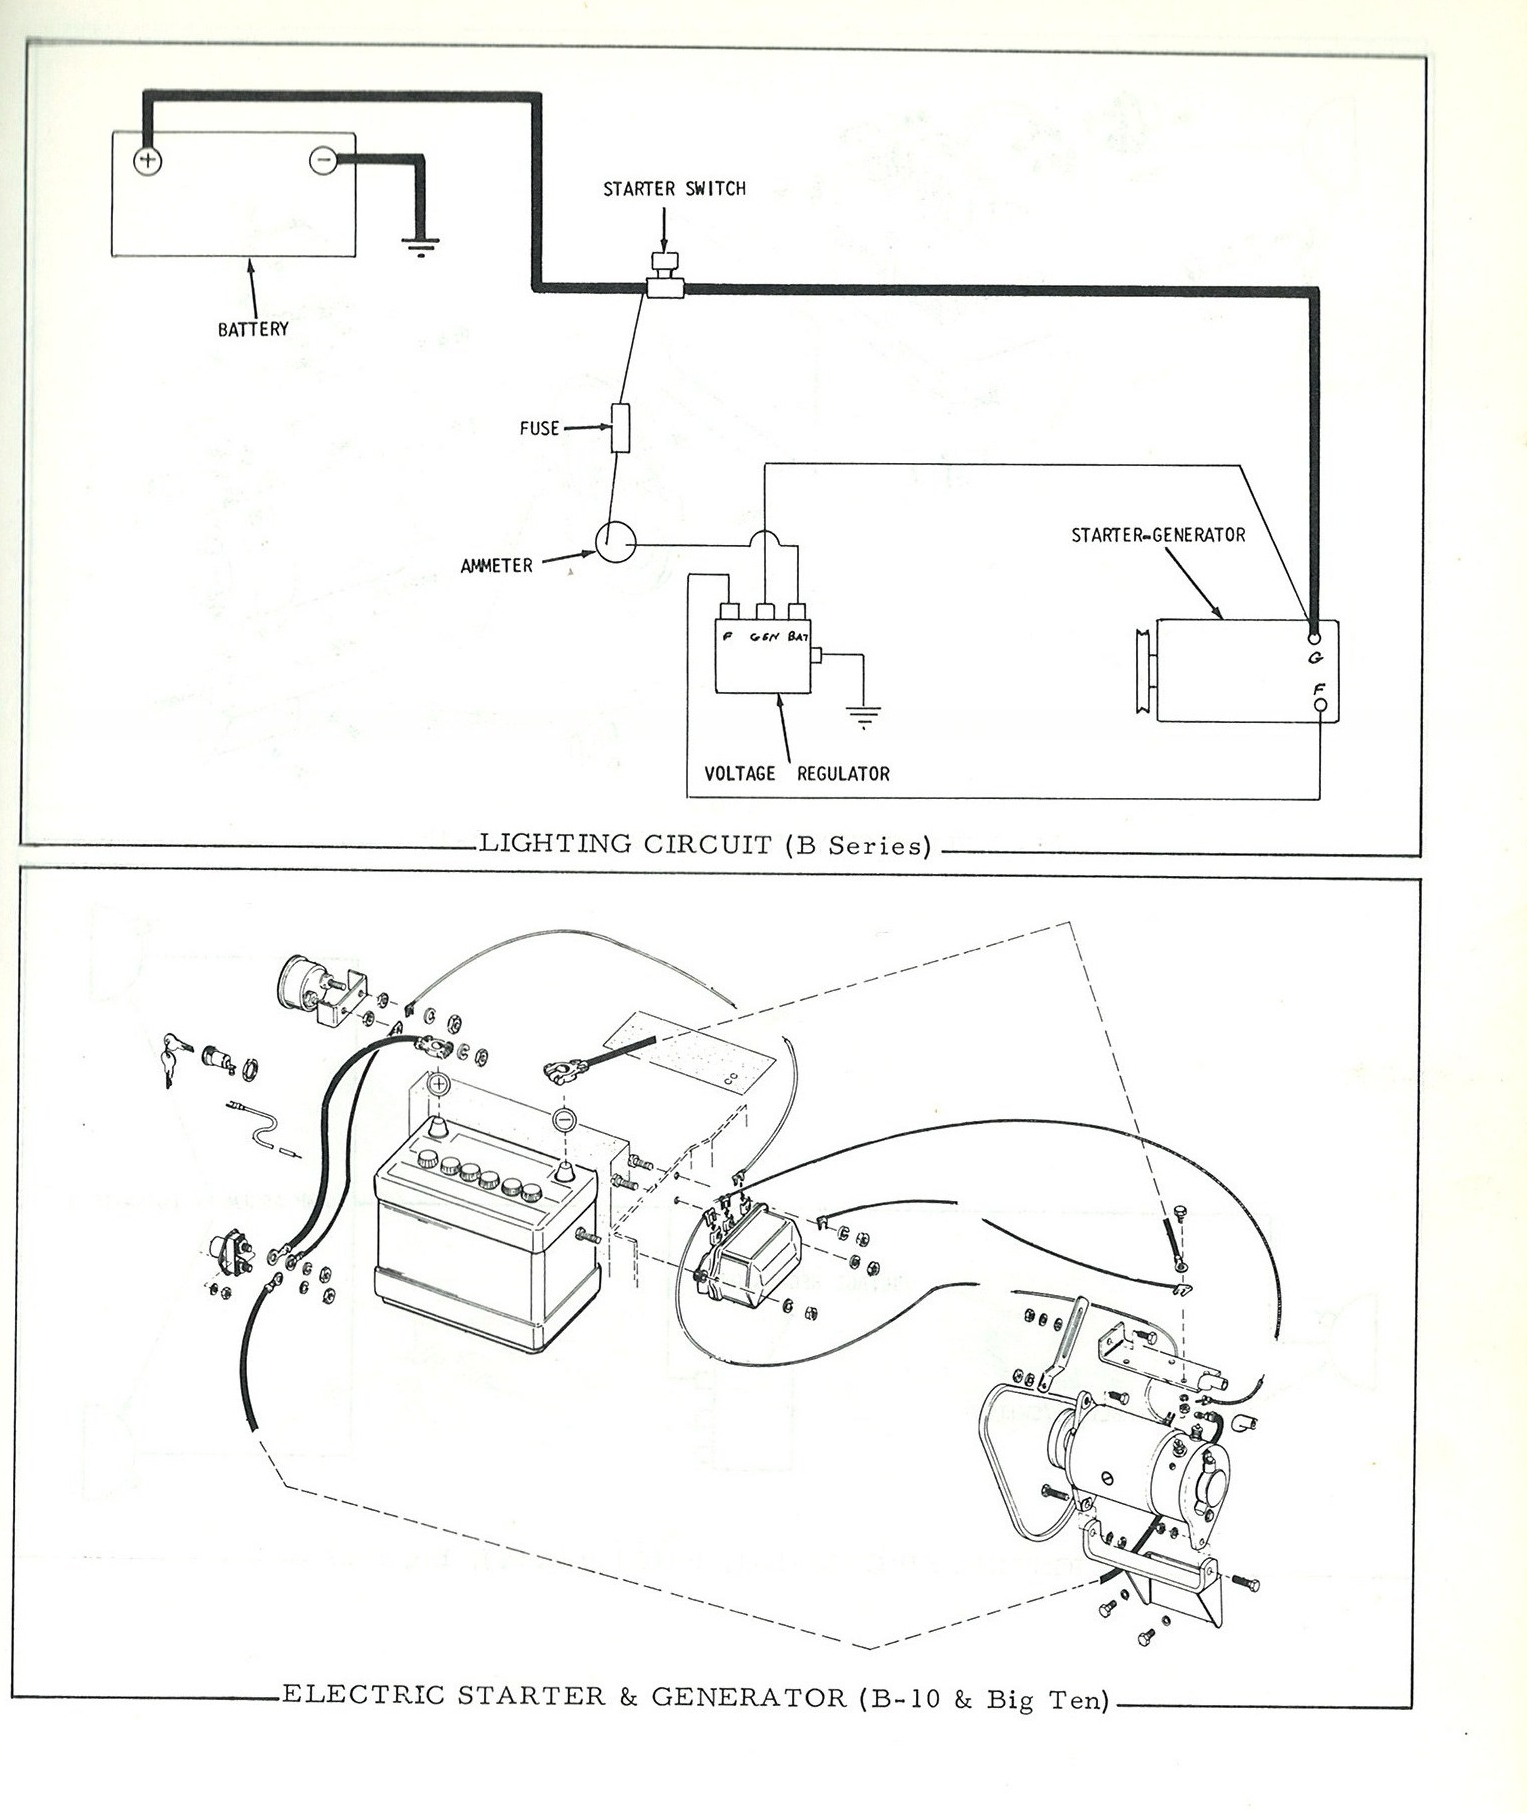 hight resolution of allis chalmers lawn mower wiring diagram wiring diagram auto allis chalmers 616 wiring diagram wiring diagram